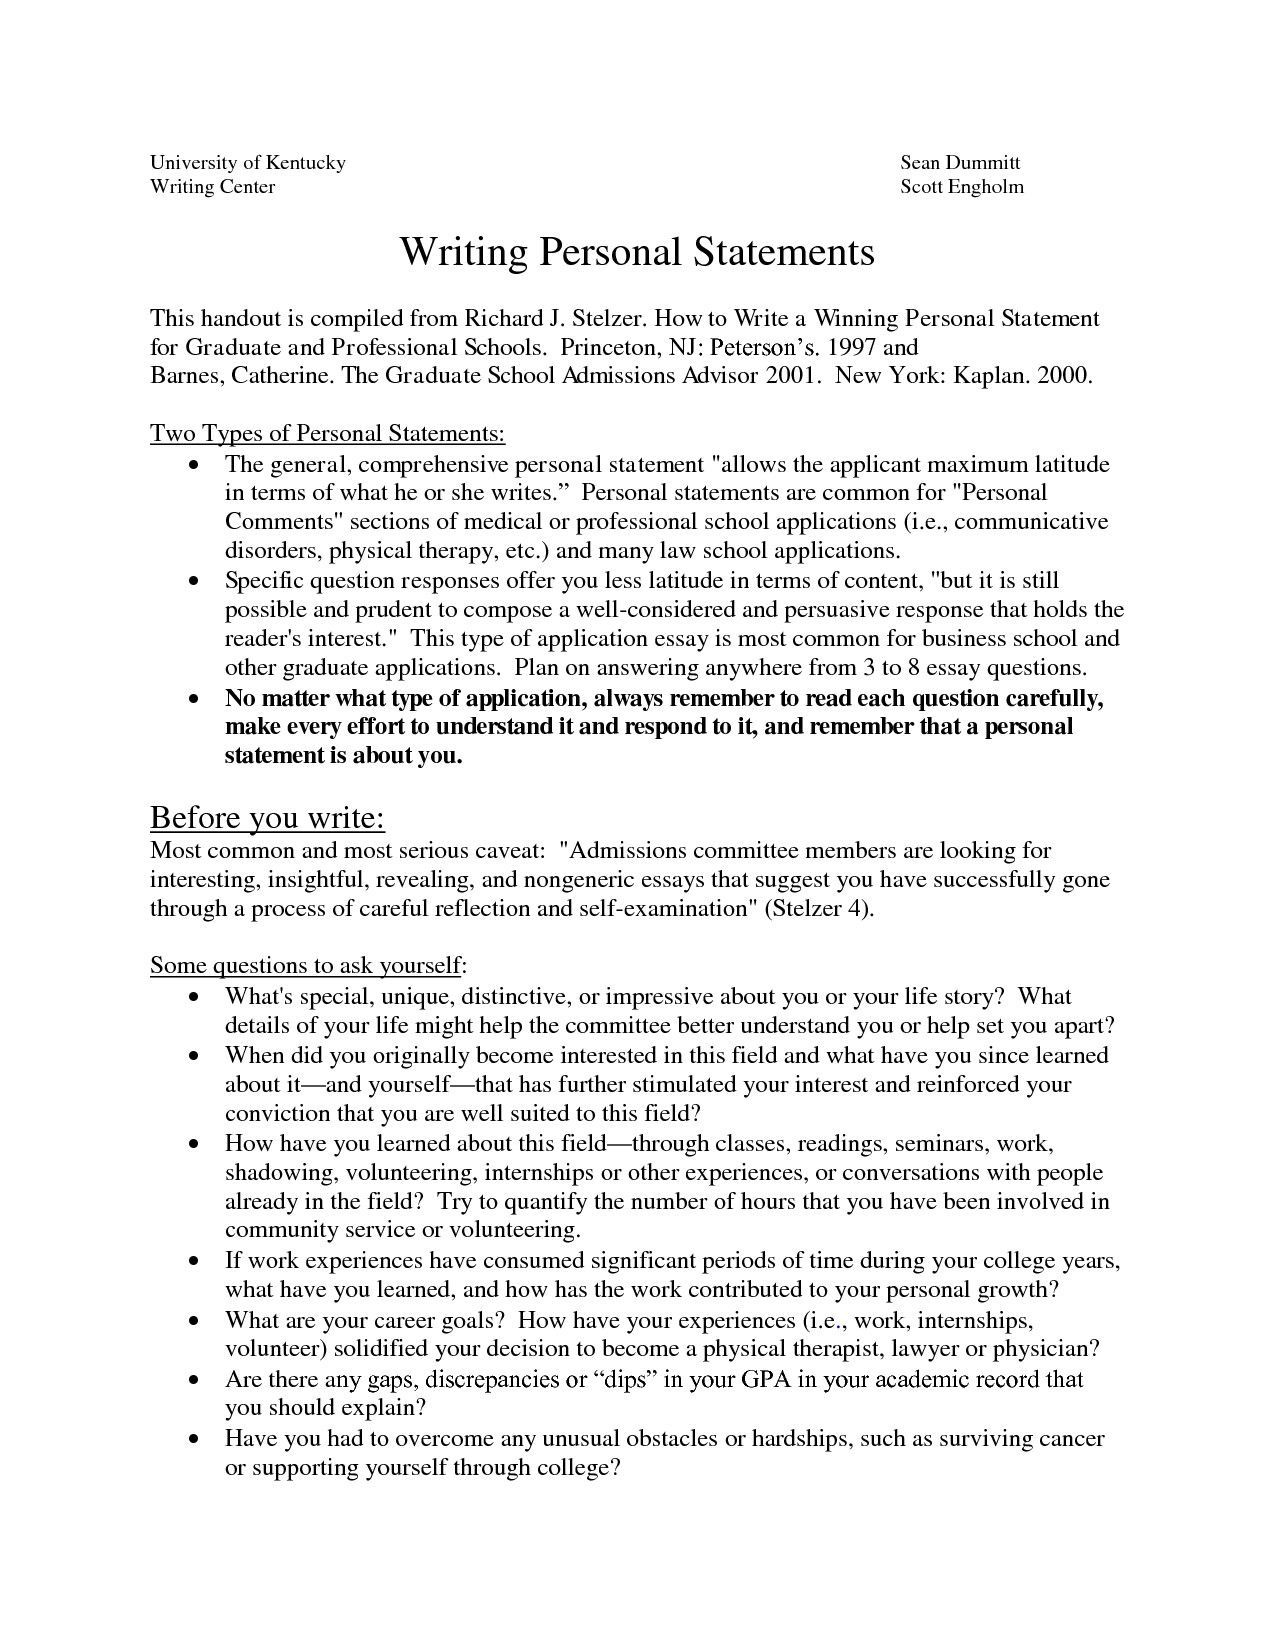 Personal Statement for Nurse Practitioner Program Examples